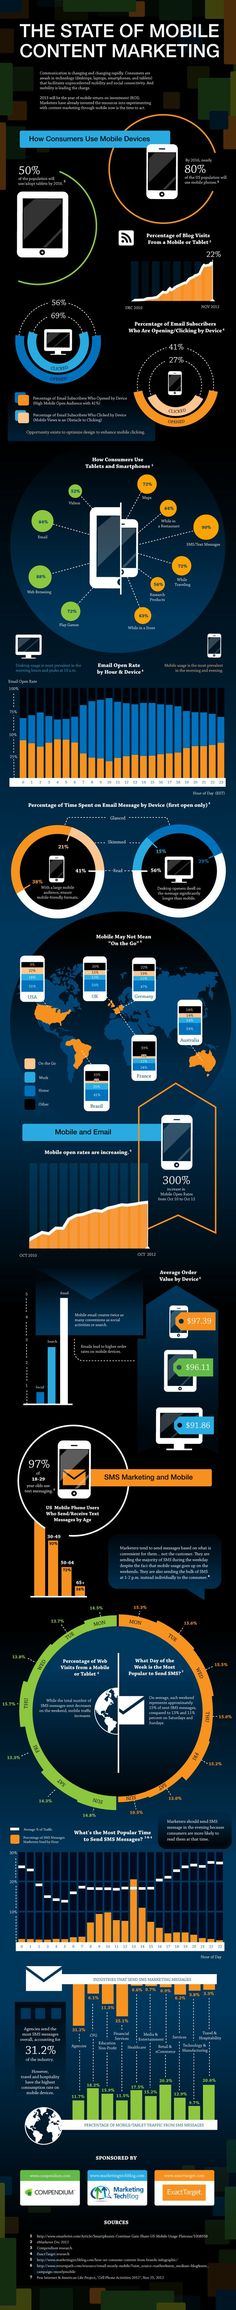 The State of Mobile Content Marketing #Infographic